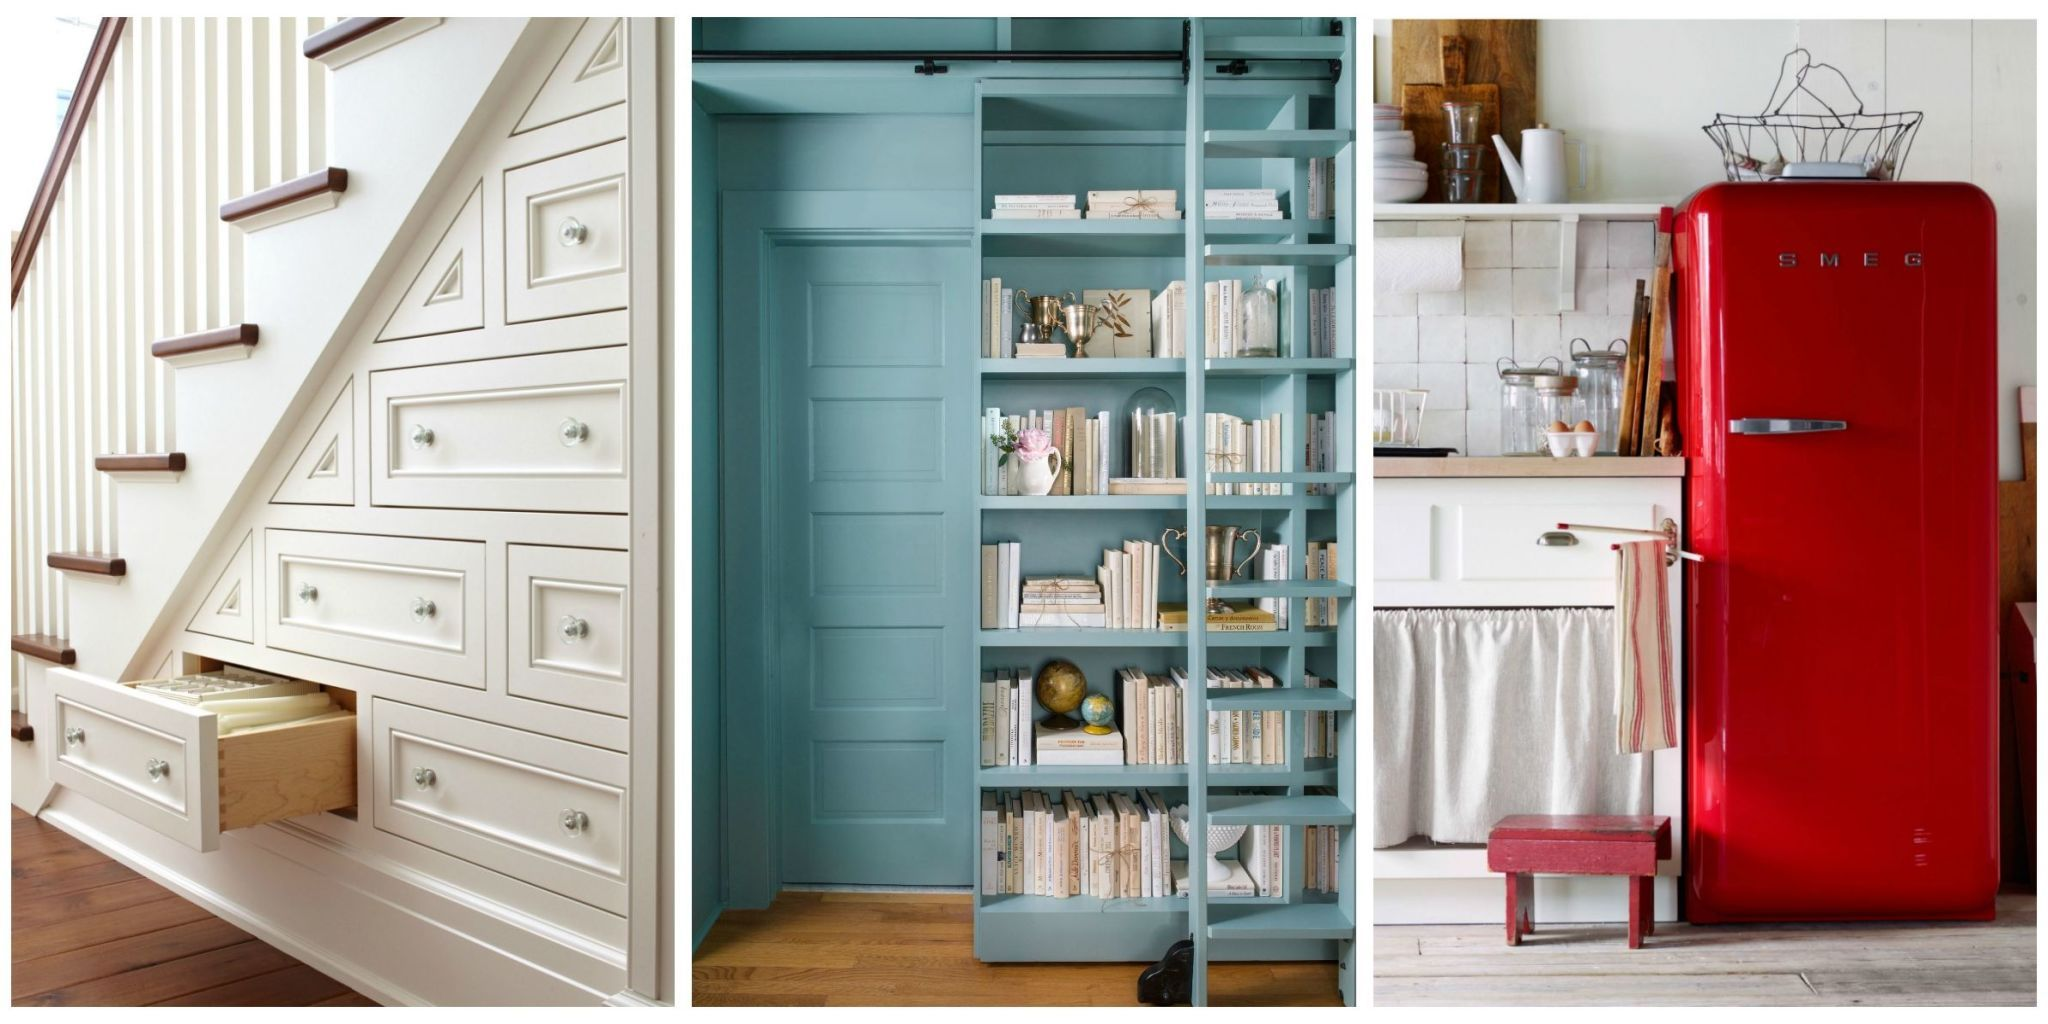 Delicieux These Small Space Decorating Ideas, Storage Solutions, And Smart Finds Will  Help You Maximize Each Square Foot, Regardless Of The Size Of Your House.